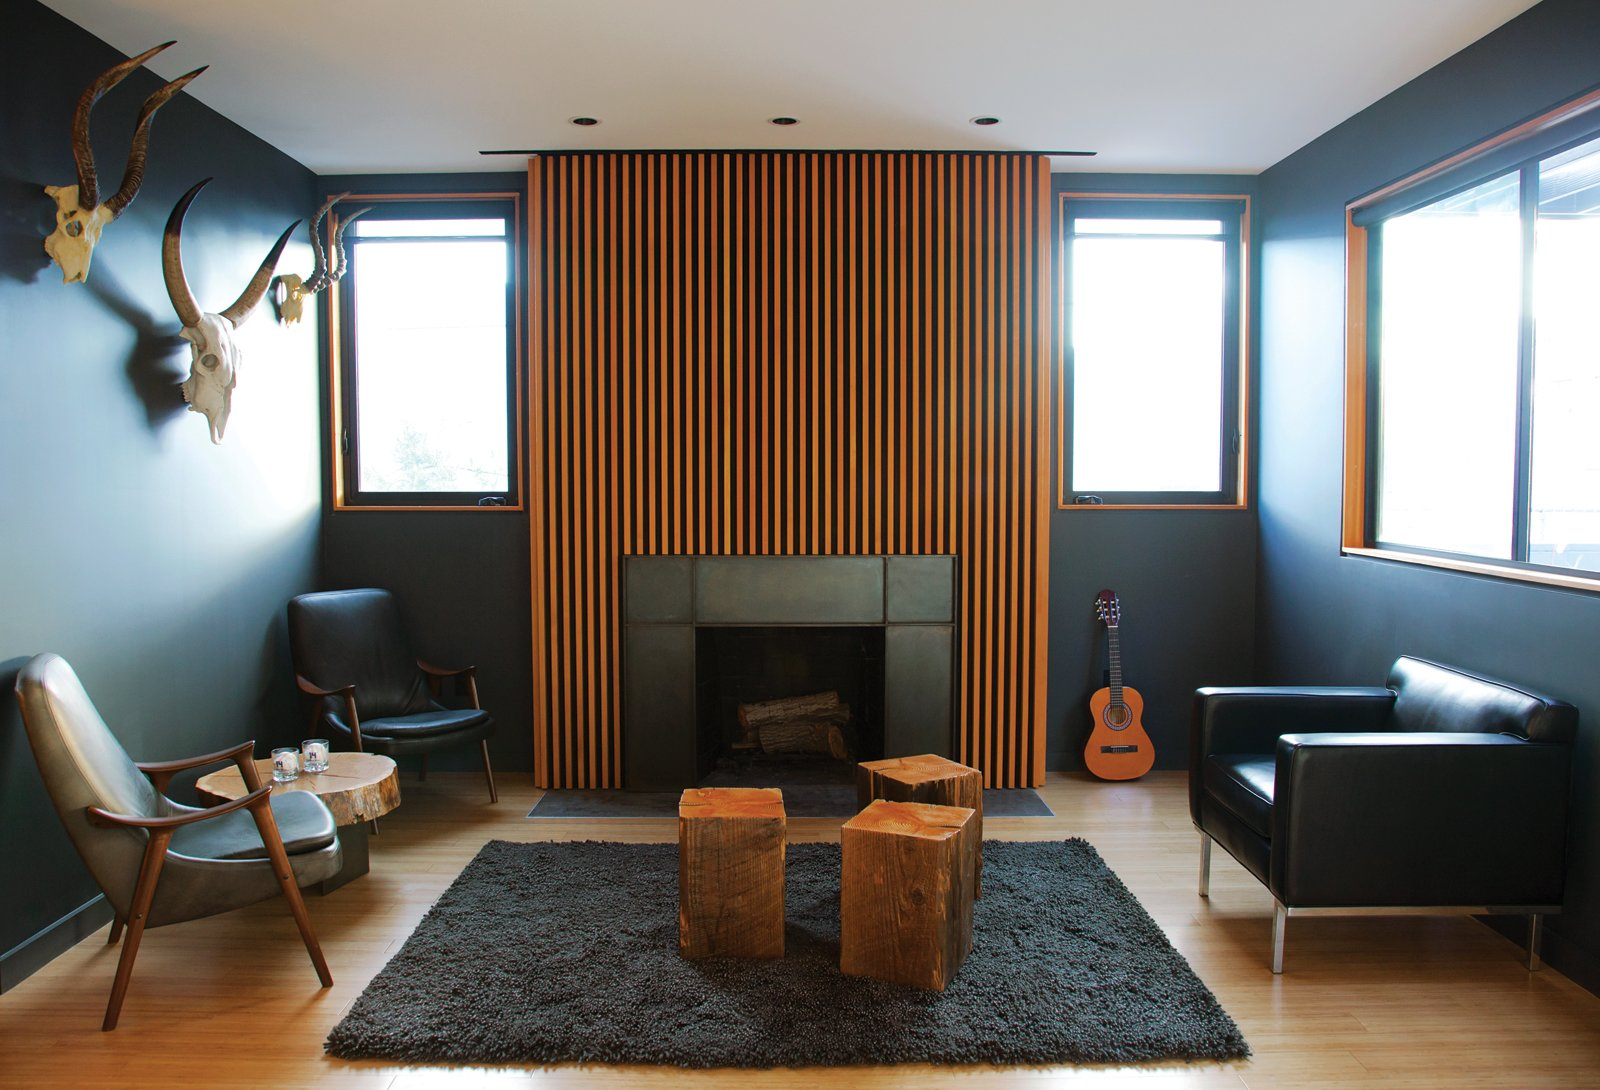 Man Cave House : Man cave decor ideas interior bedroom best room